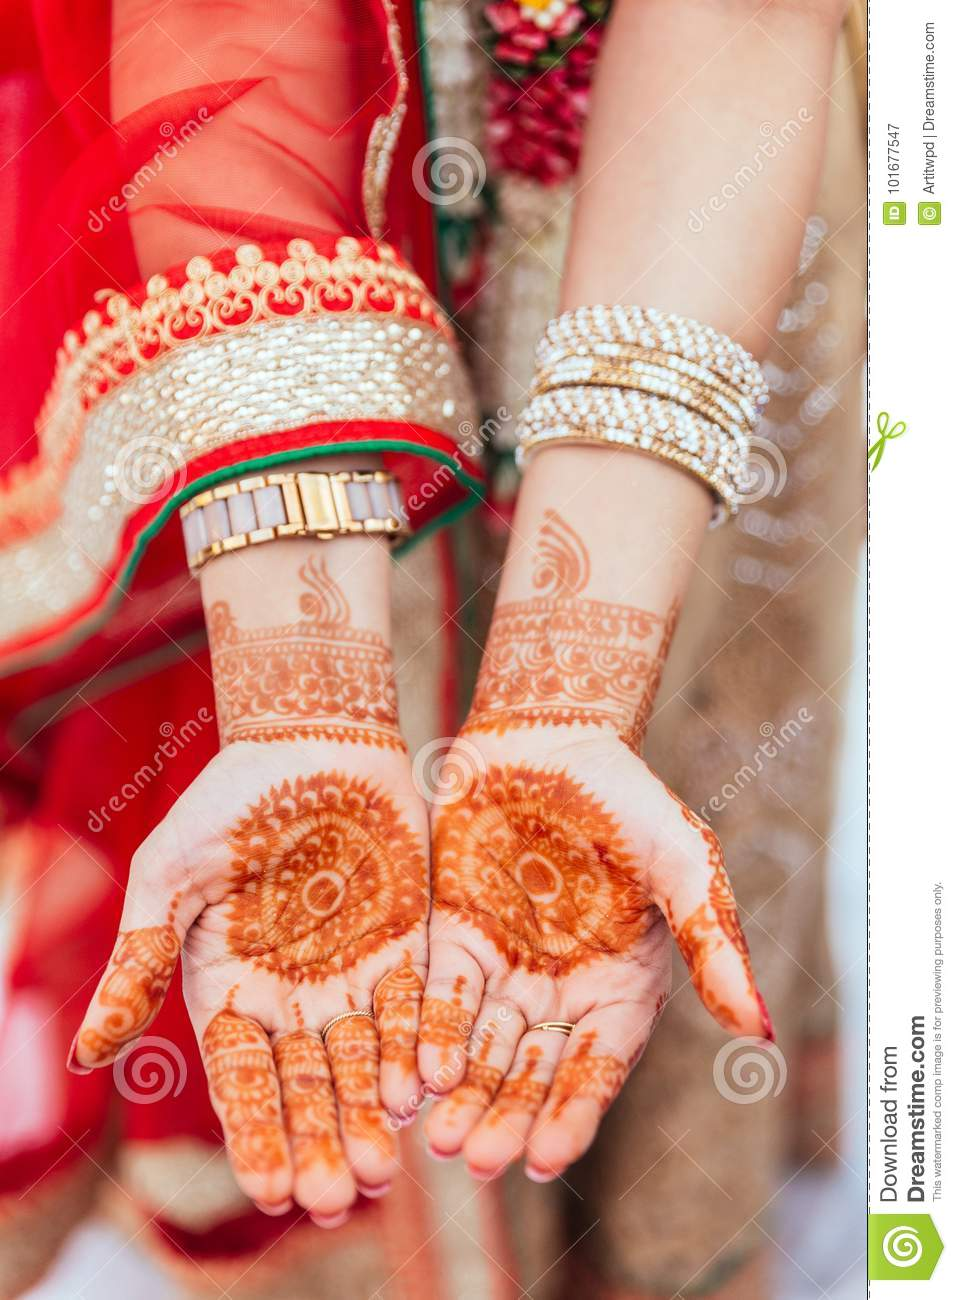 Henna Paint On Both Hands For Woman At Indian Wedding Ceremony In